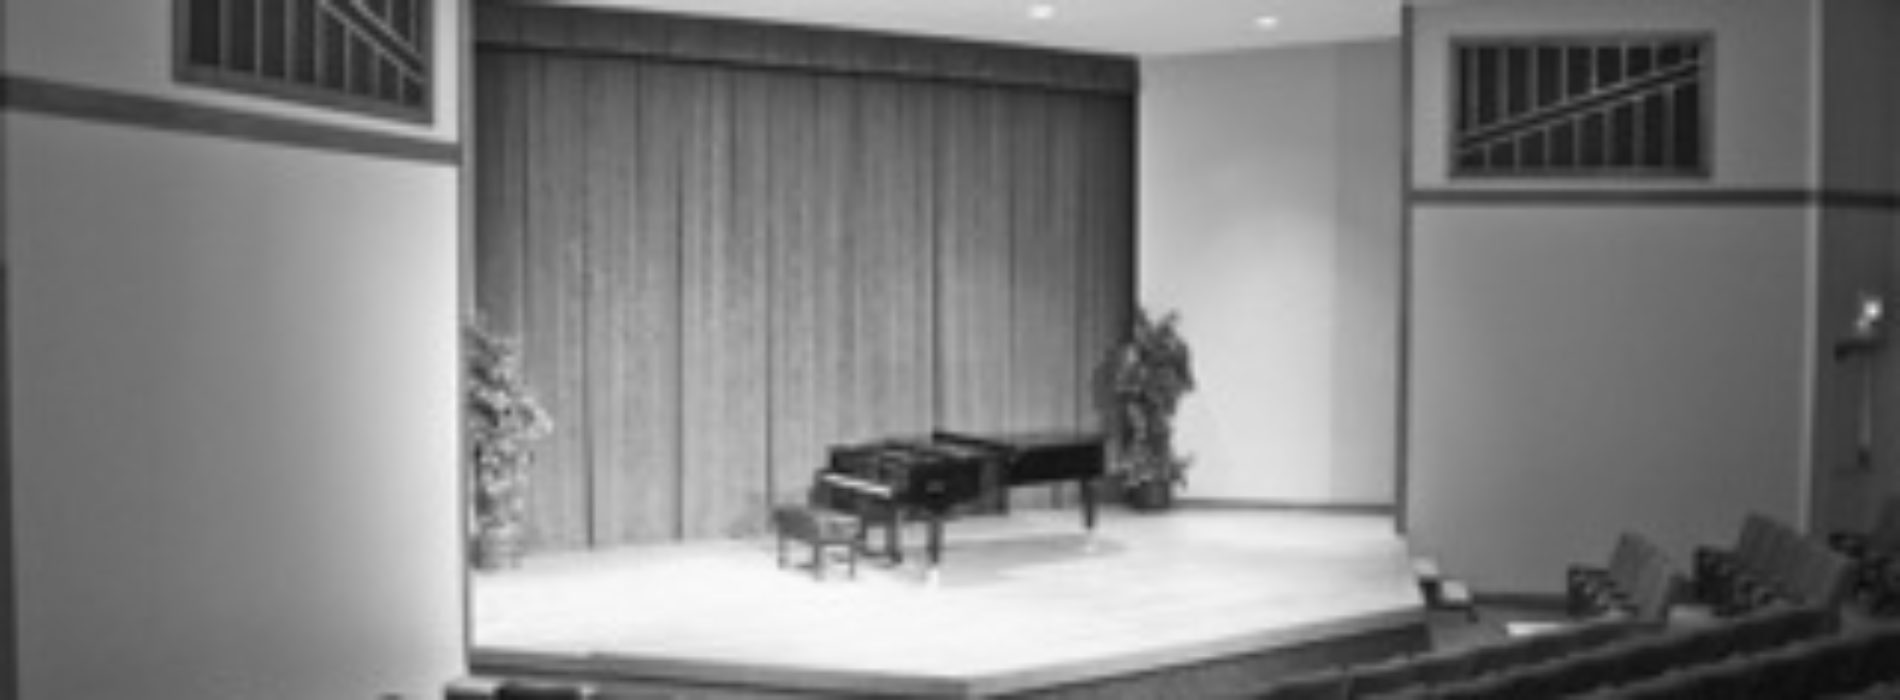 Student Recital Slated for Wednesday